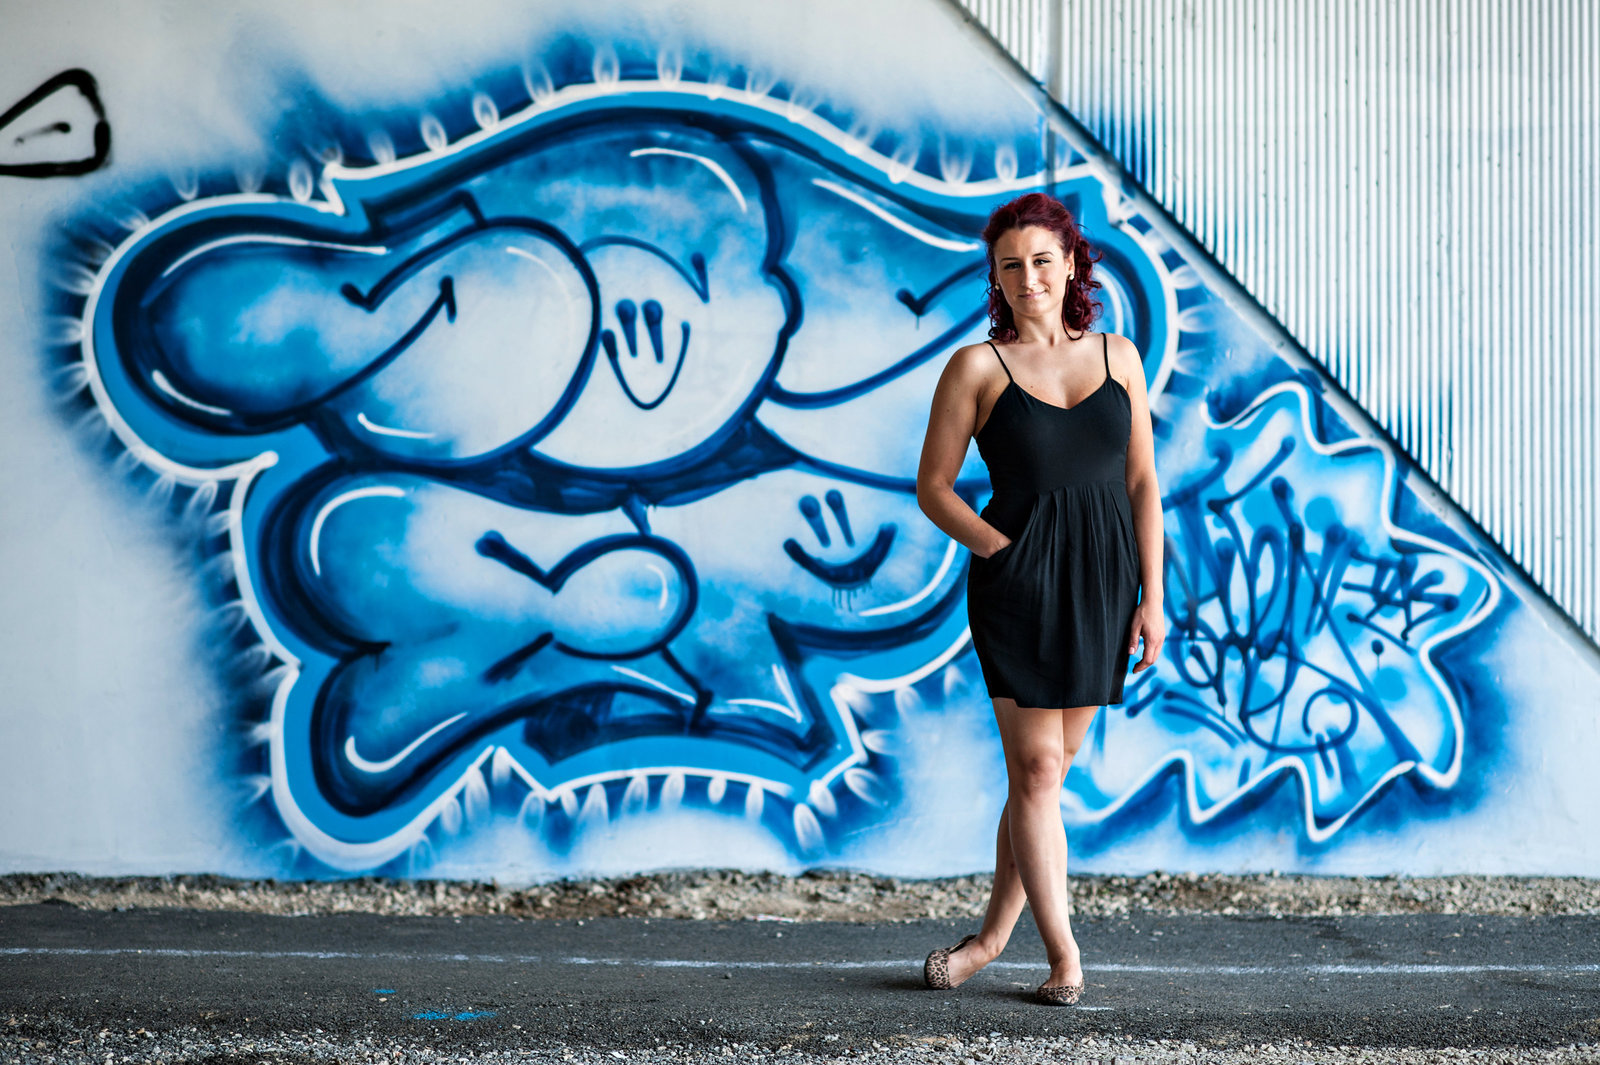 portrait of a dancer in front of a blue graffiti wall.